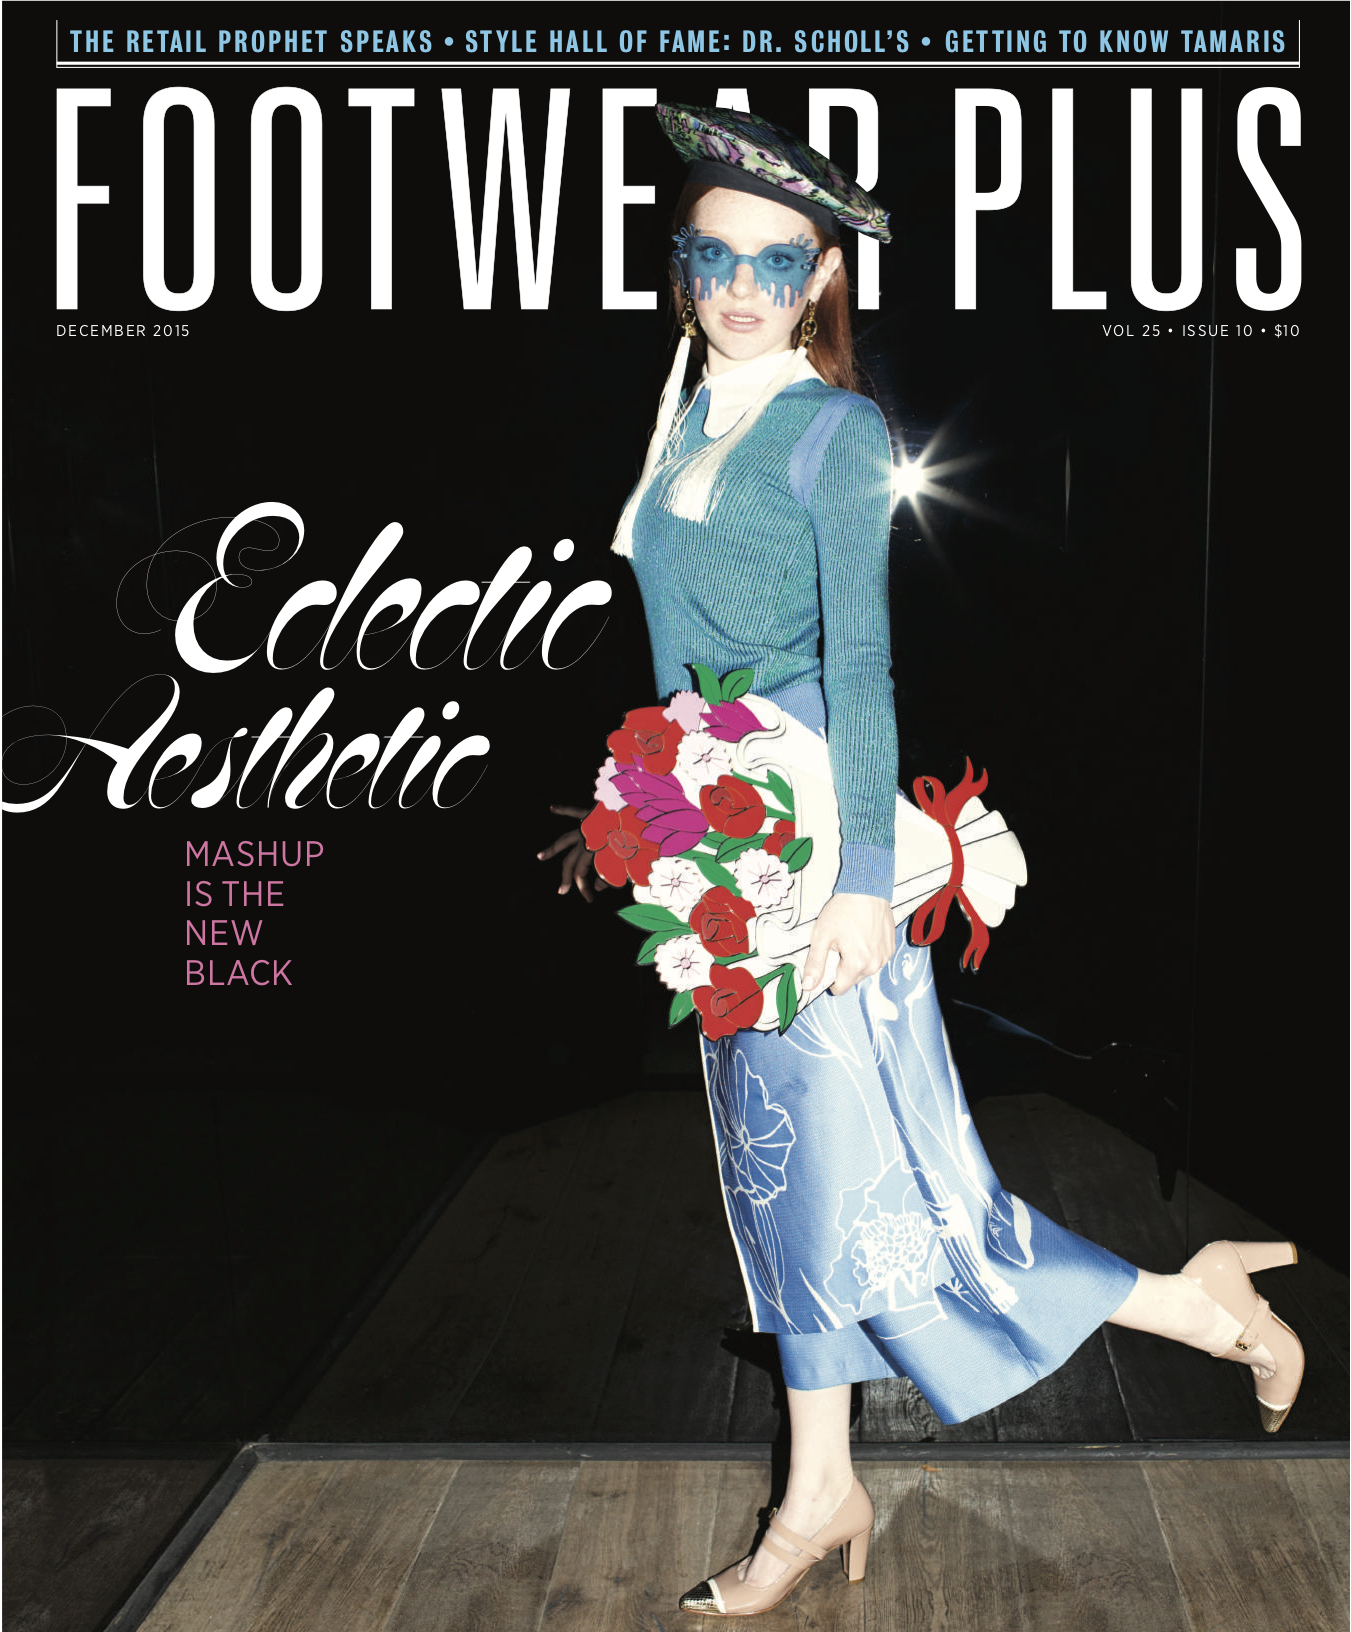 FootwearPlus_December-2015 (dragged) copy